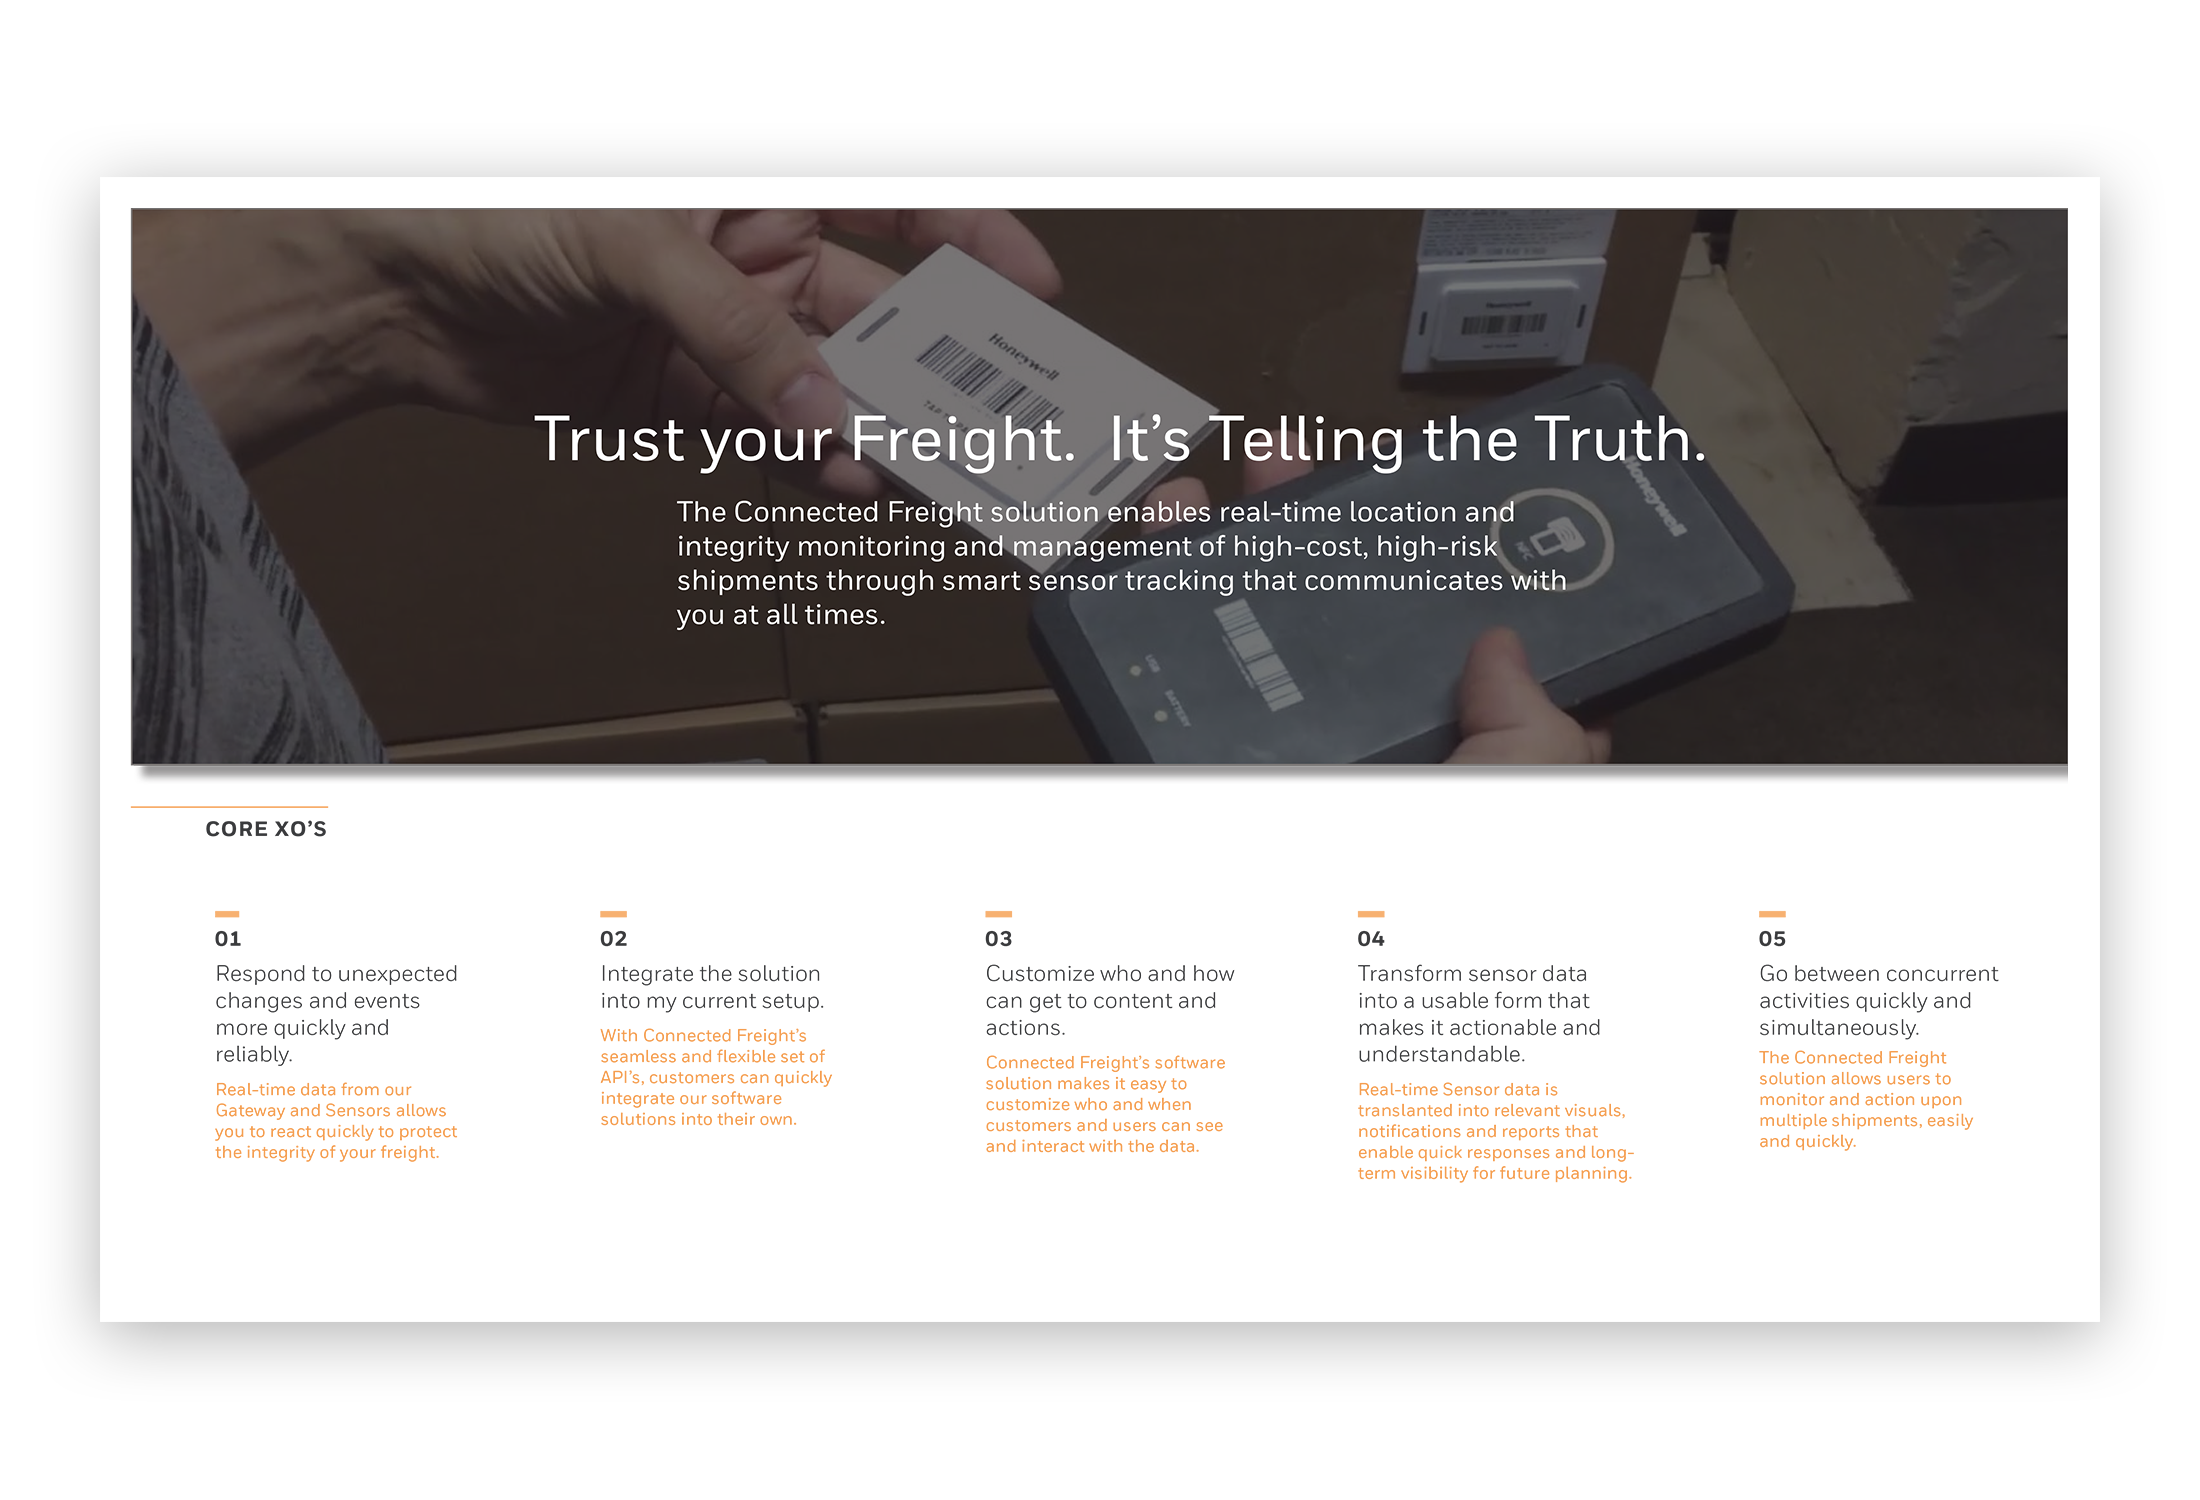 Connected Freight's 'Landing Page' with the 5 top Experience Outcomes.